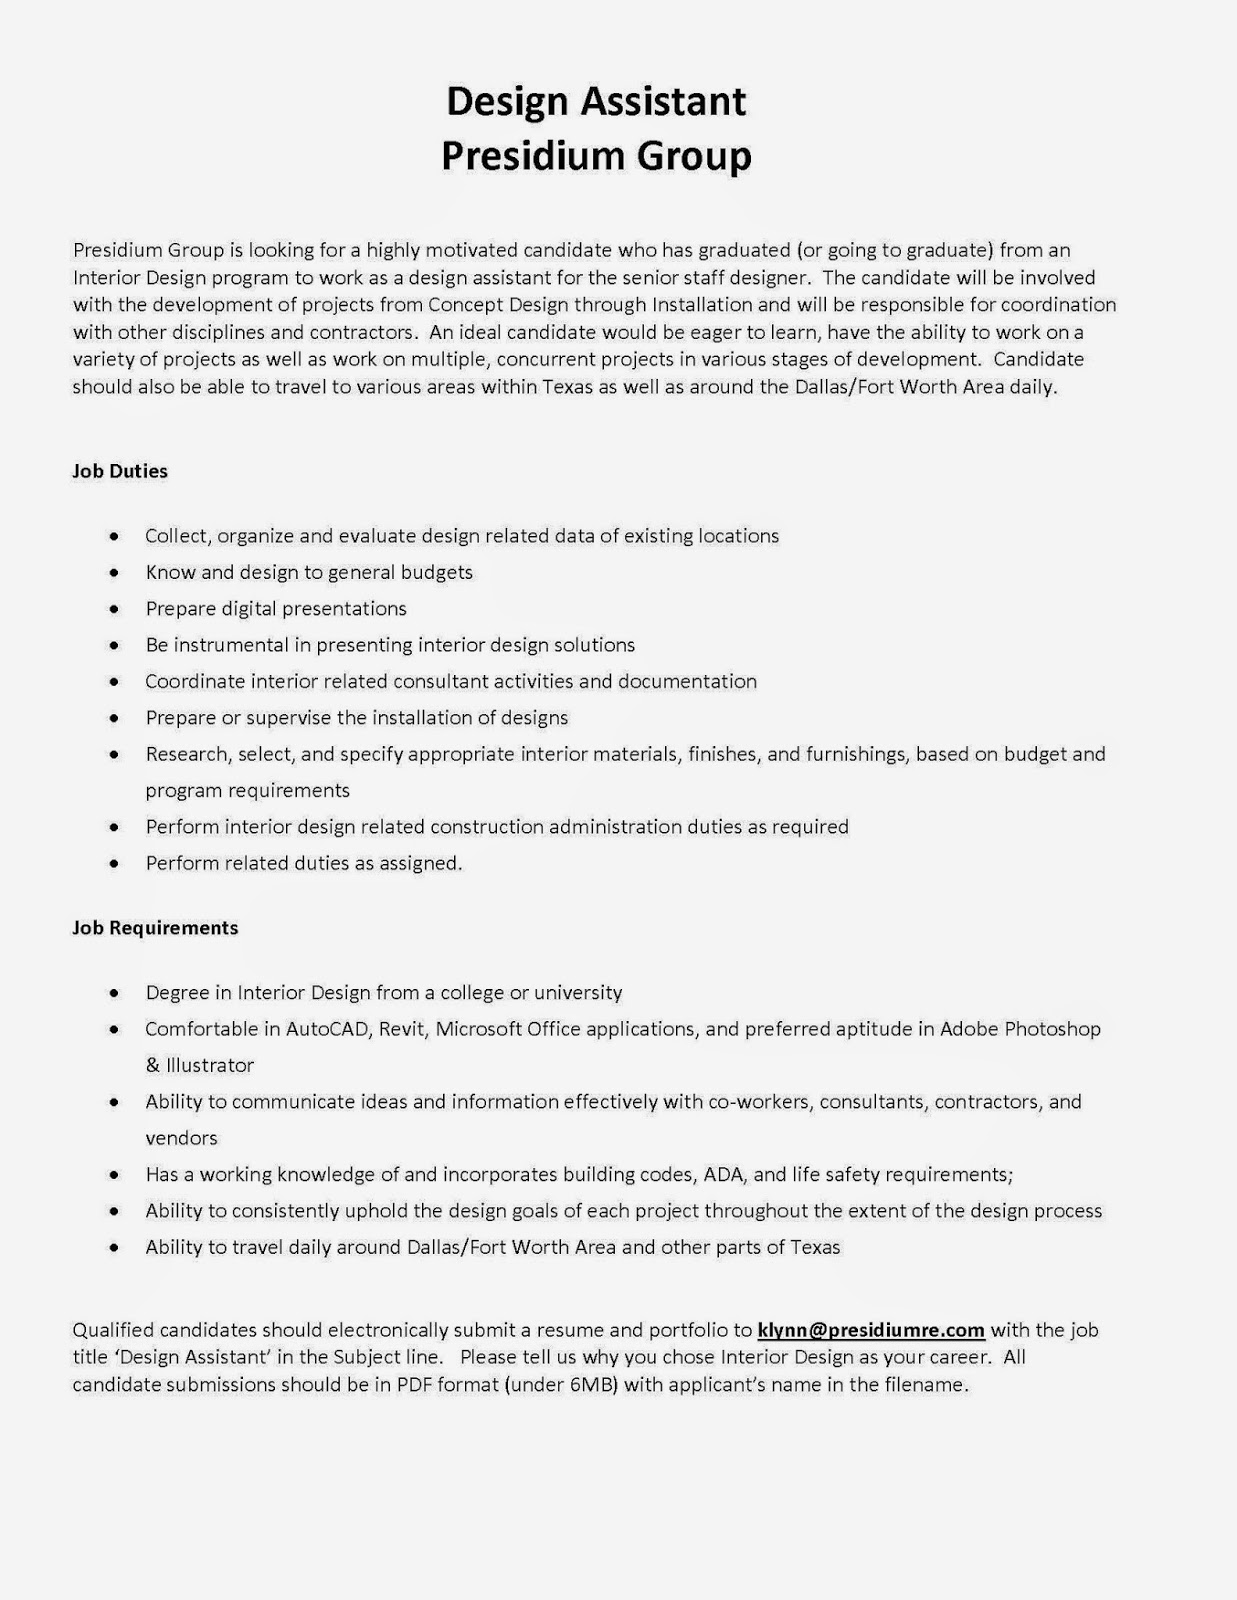 Resume For Fashion Designer Job What Is An Interior Designers Job Description